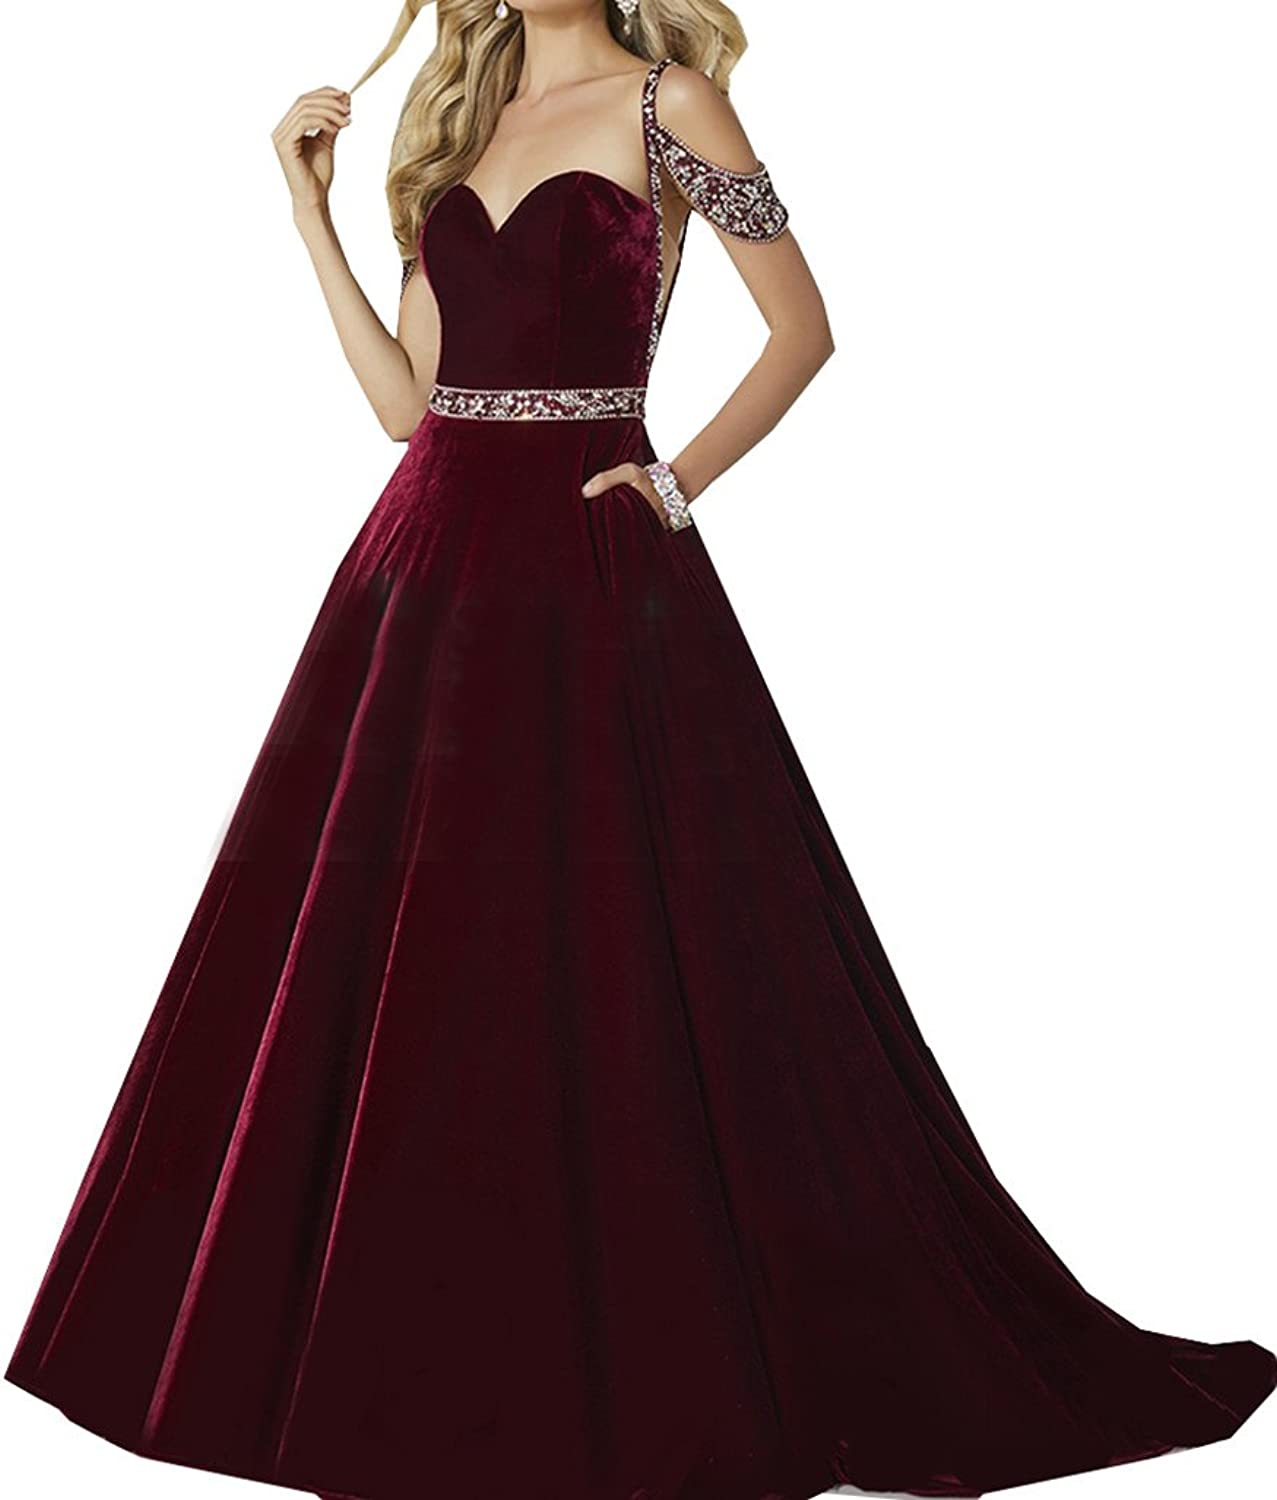 2018 Spaghetti Straps A Line Velvet Prom Dress With Beading Evening Party Dress